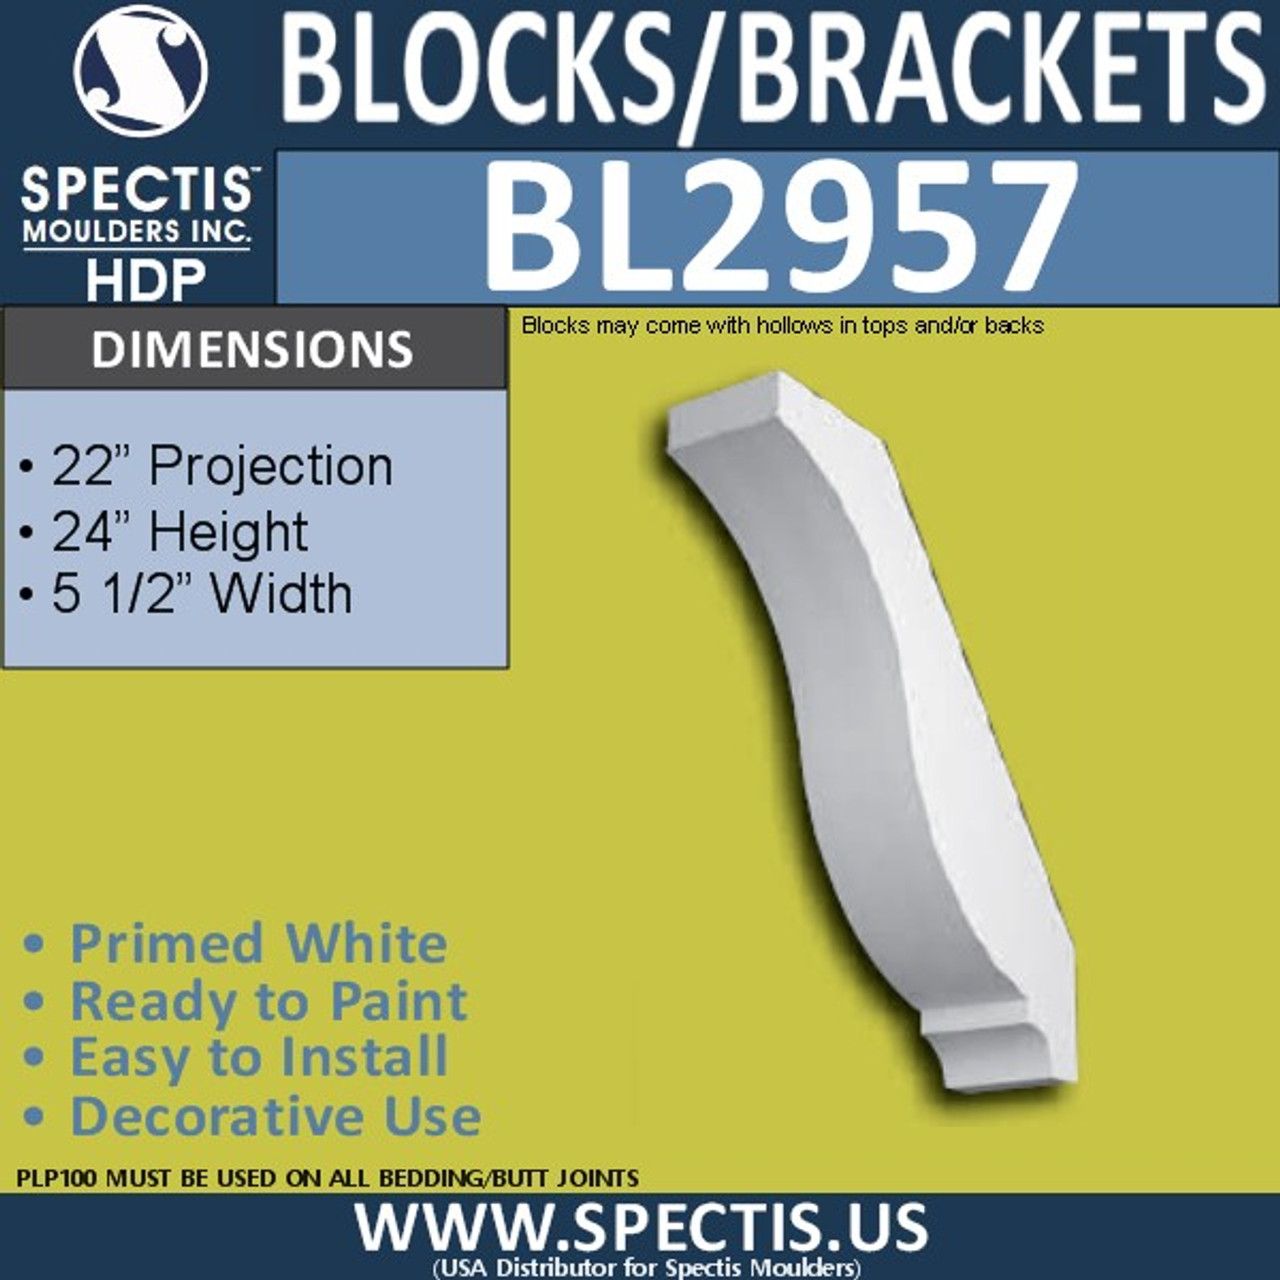 "BL2957 Eave Block or Bracket 5.5""W x 24""H x 22"" P"